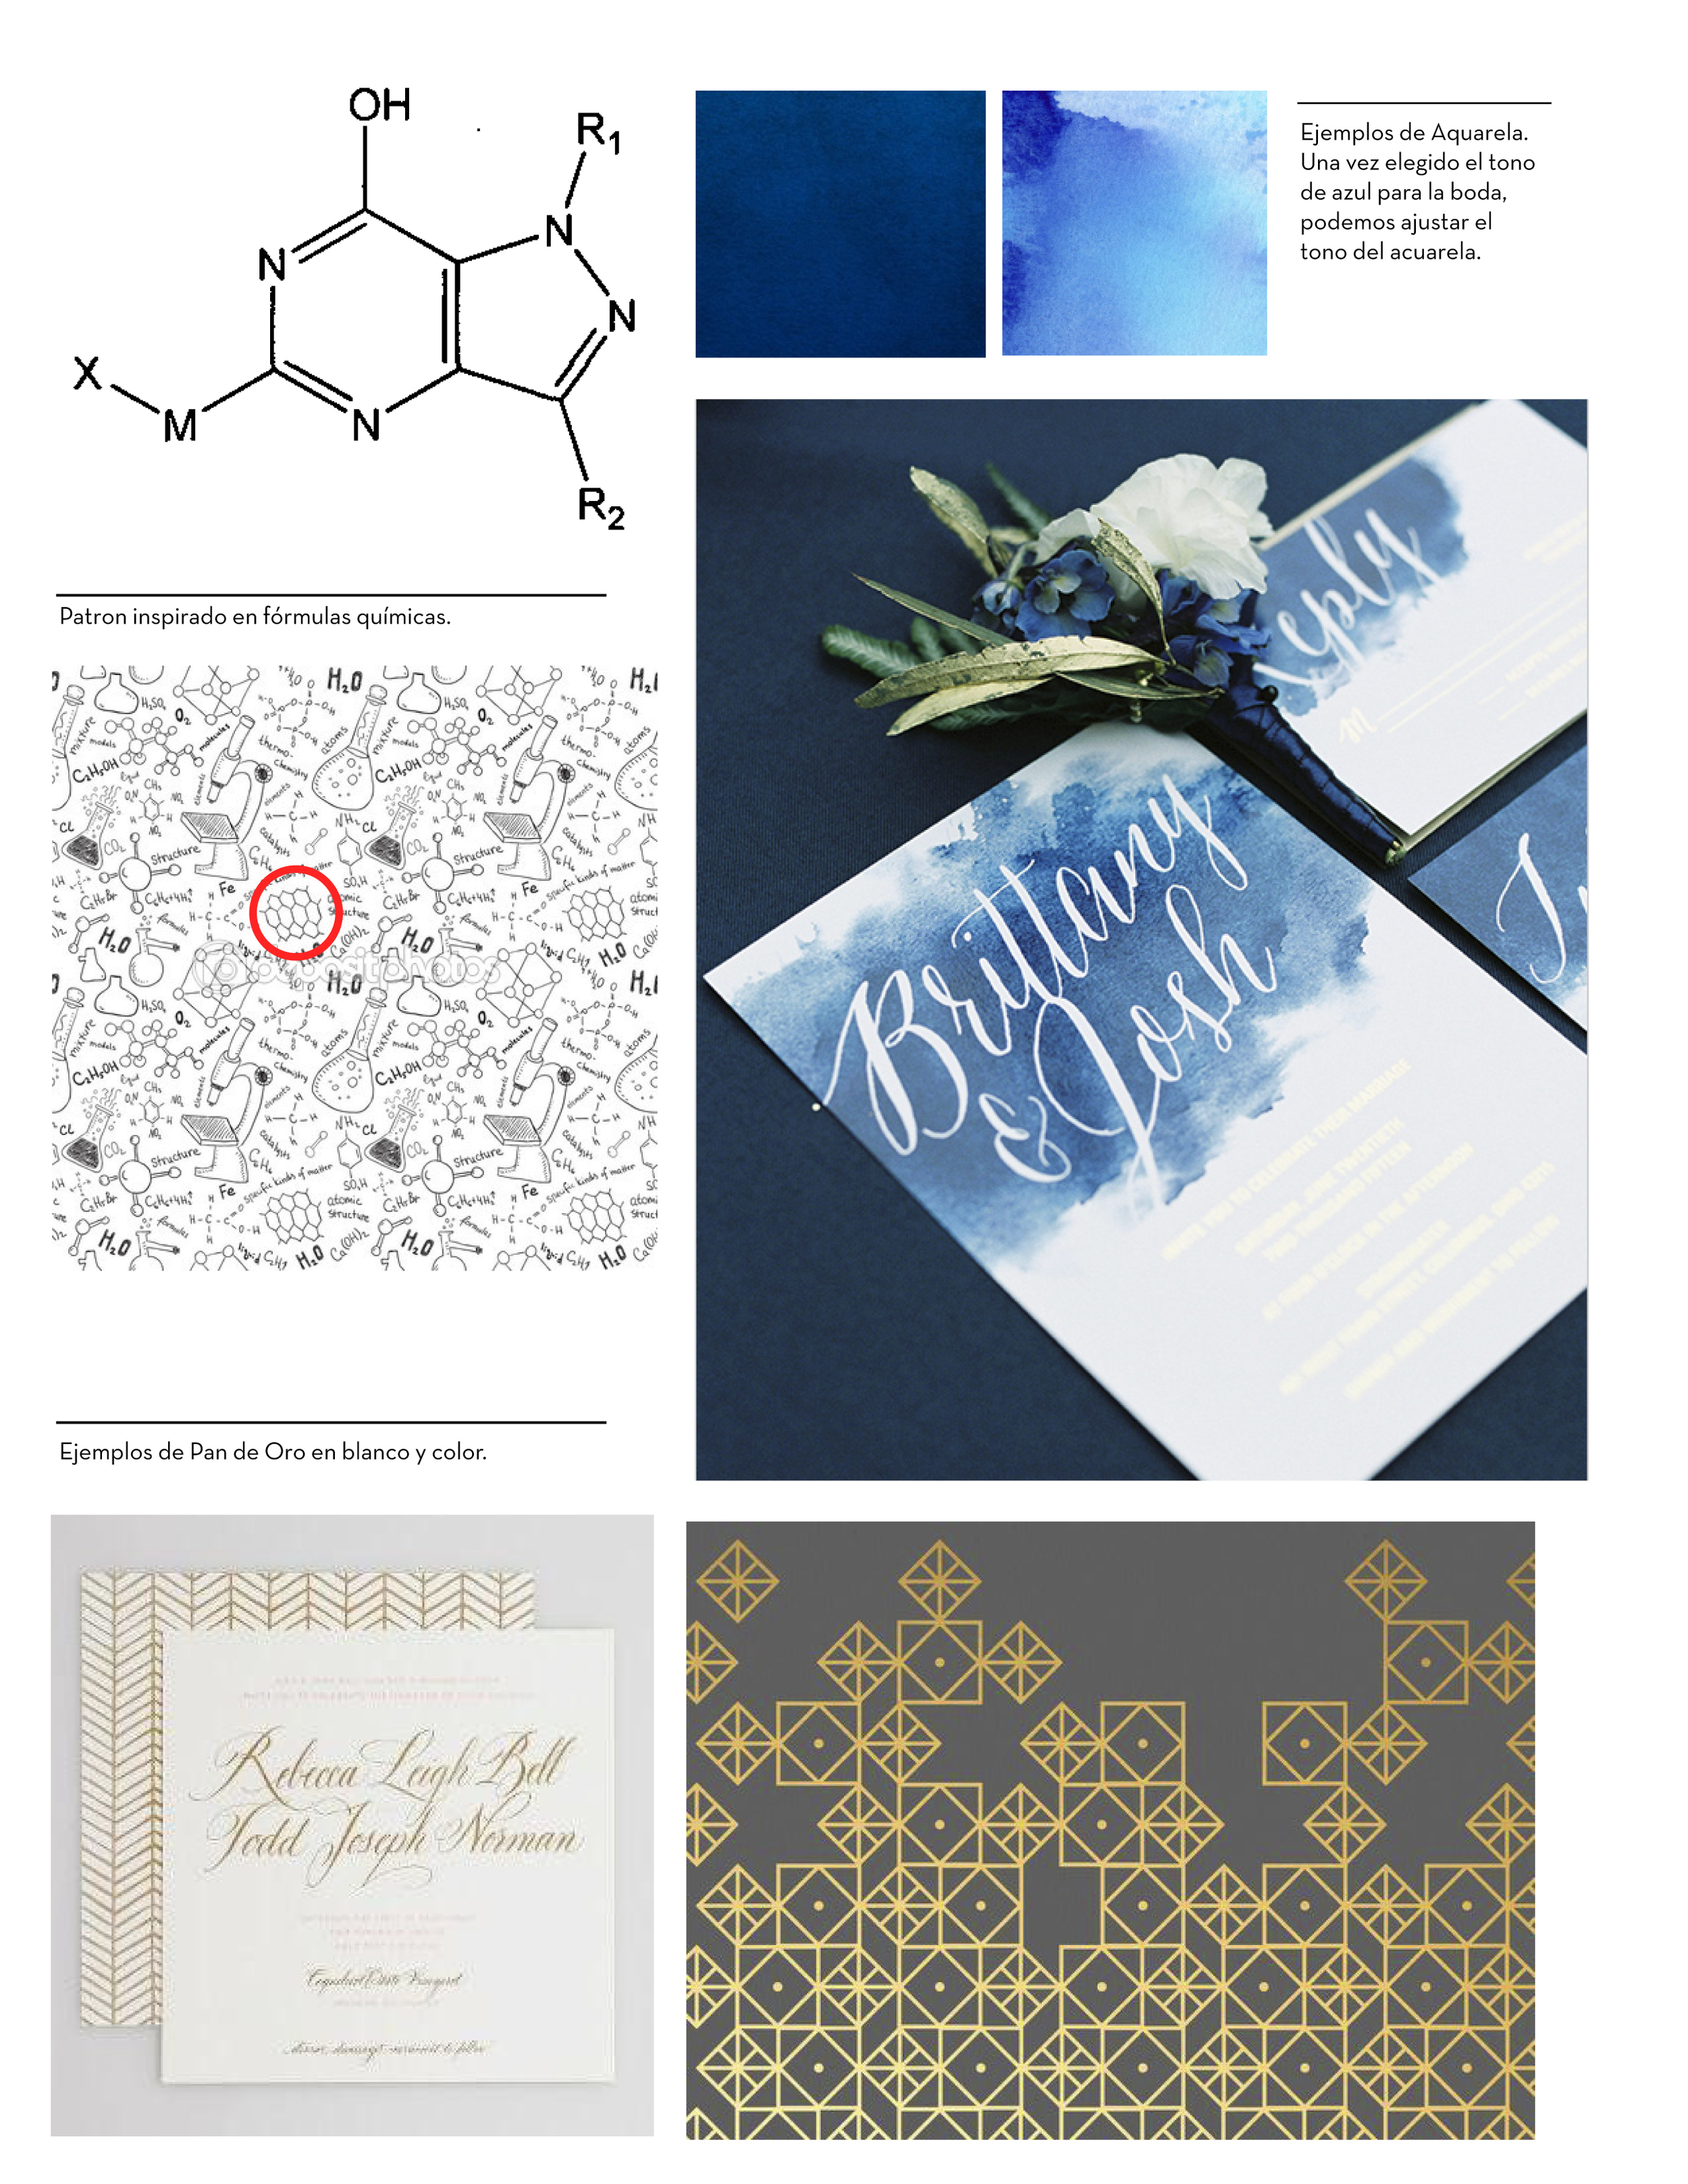 Inspiration for chemistry themed wedding.